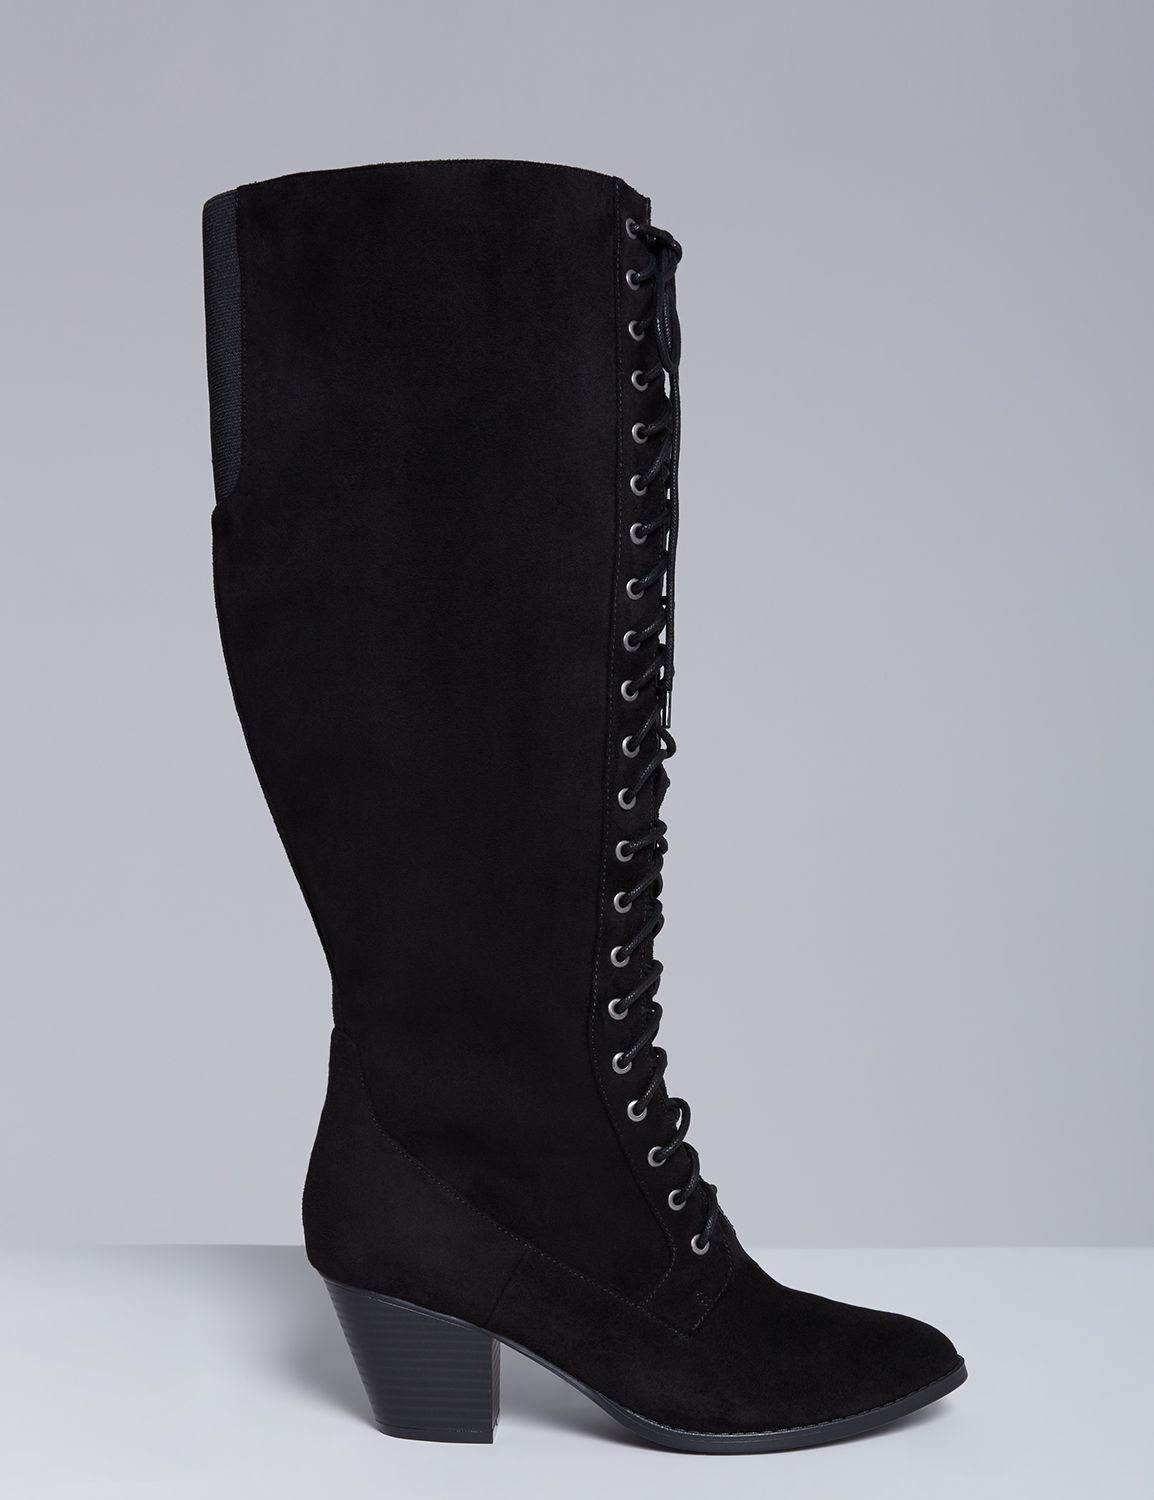 Retro Vintage Style Wide Shoes Lane Bryant Womens Tall Lace-Up Boot 12W Black $89.95 AT vintagedancer.com